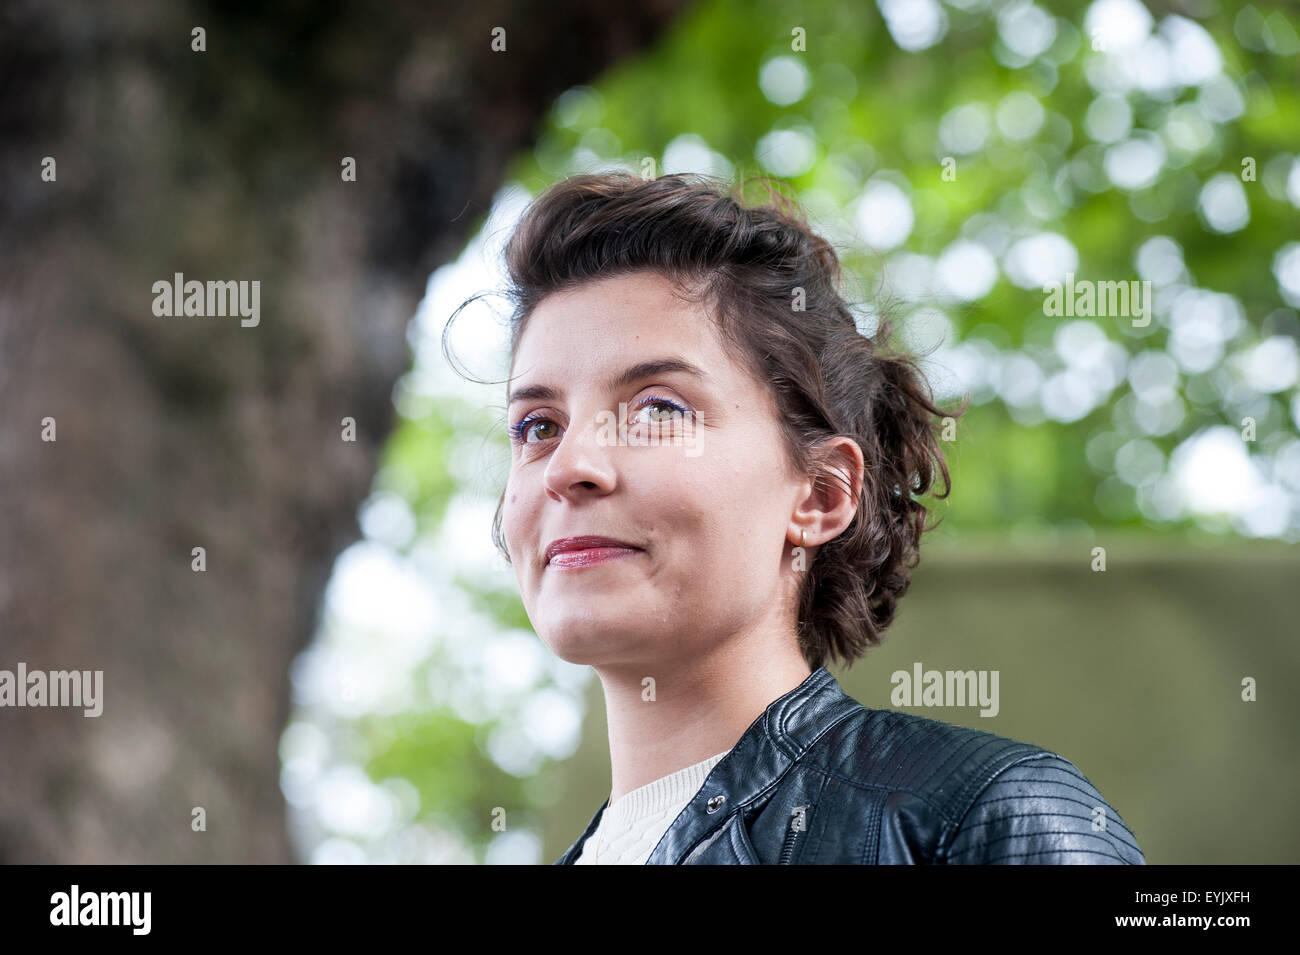 English actress and author, Jessie Burton, appearing at the Edinburgh International Book Festival - Stock Image